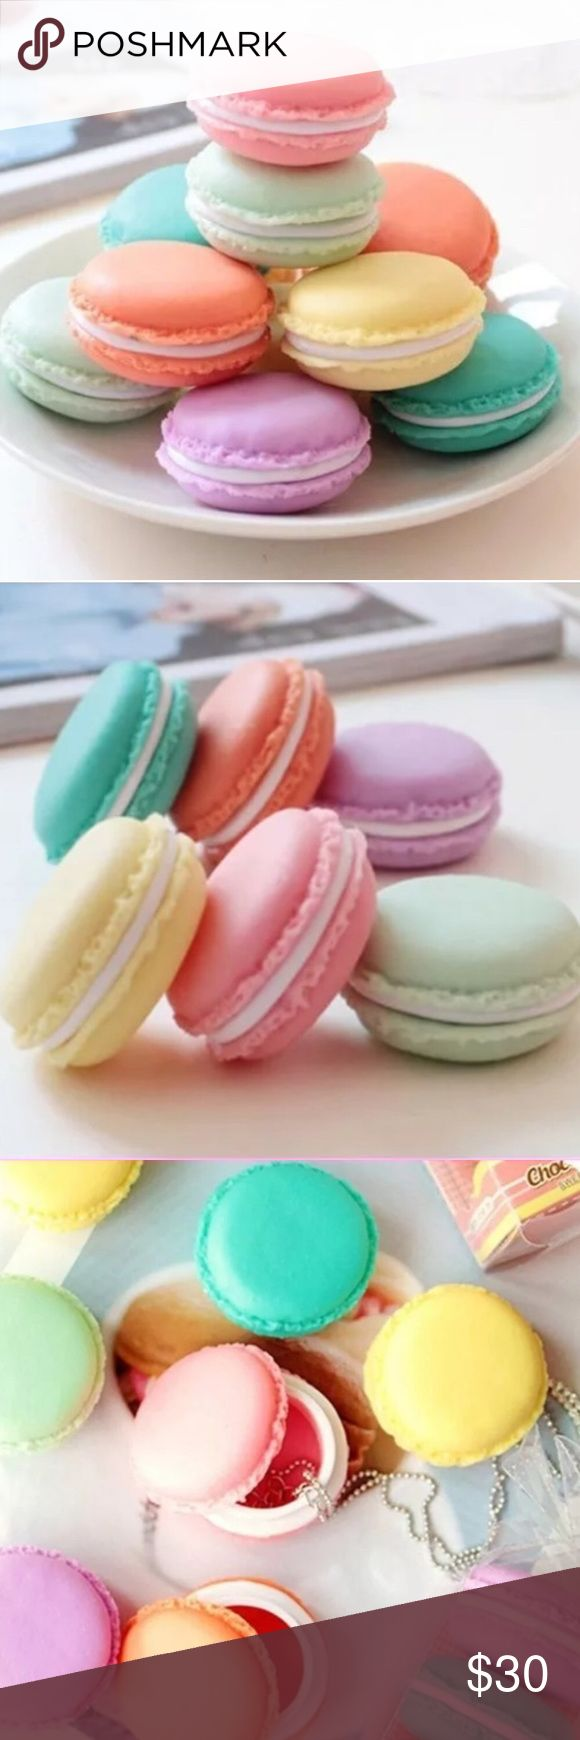 3 pastel macaroon boxes New. Cute macaroon boxes, set of 3 for @11addie. calicactus Accessories